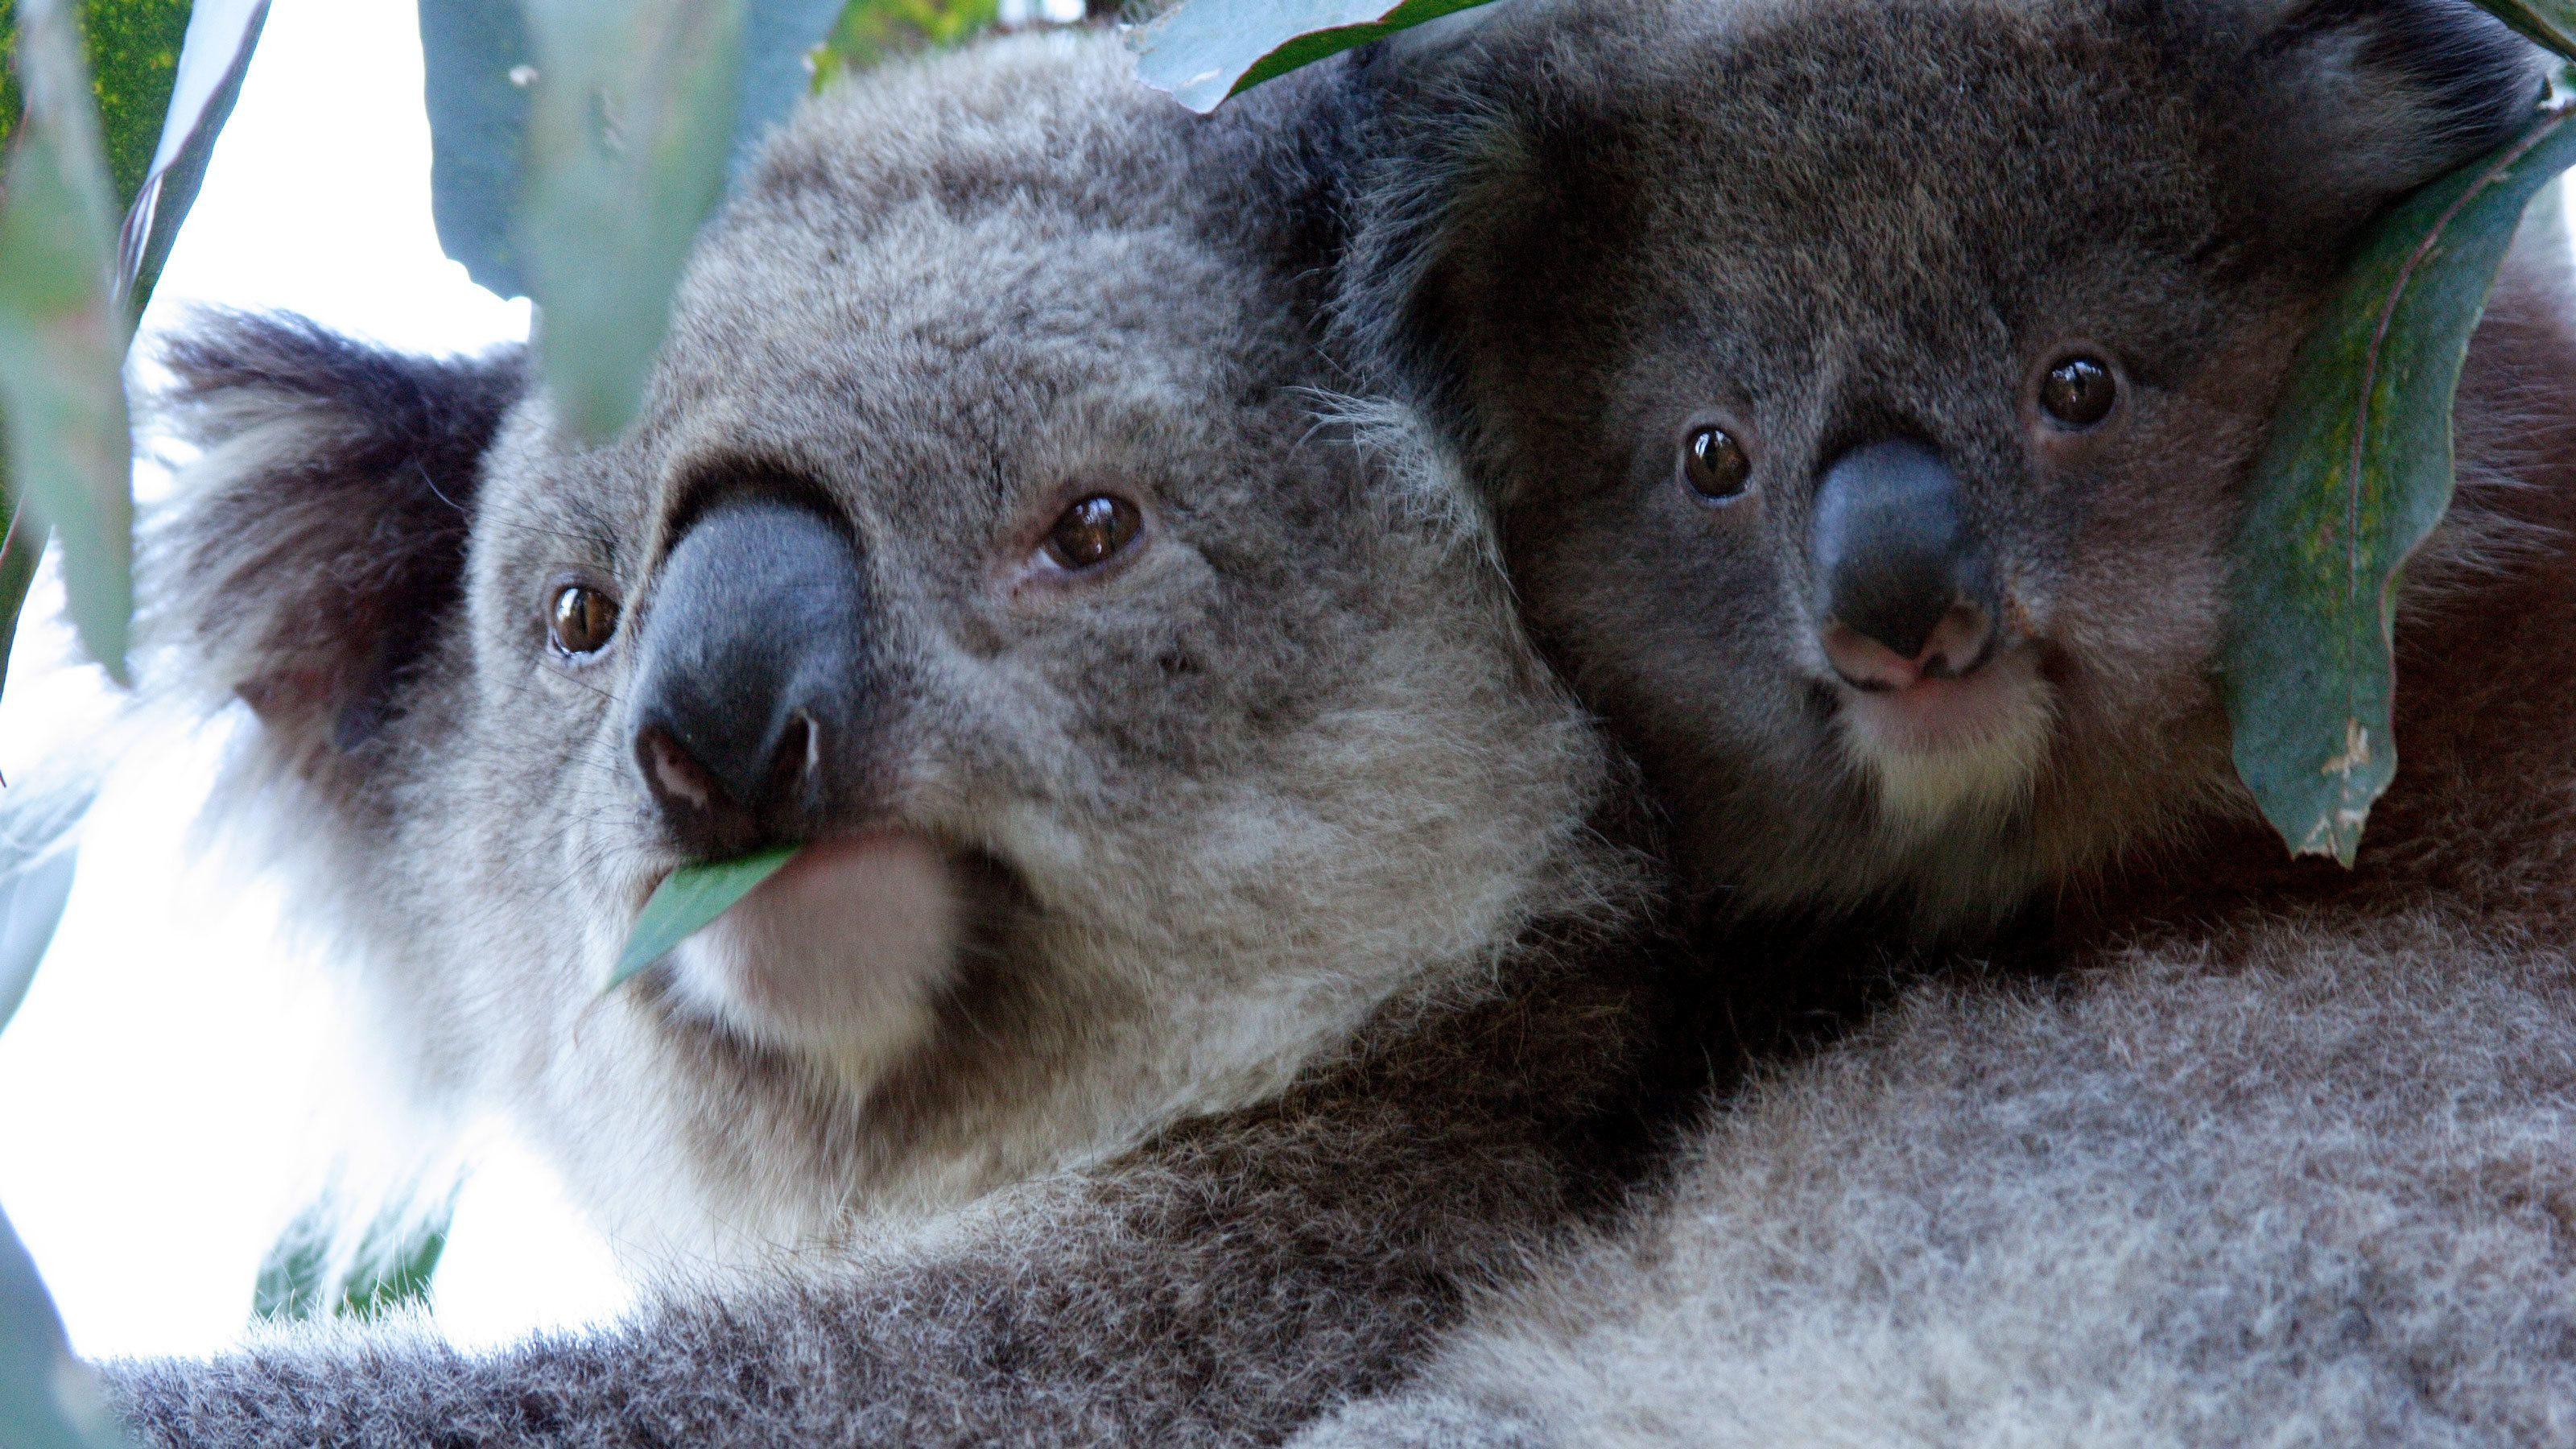 Pair of koalas perched in a tree on Phillip Island in Australia